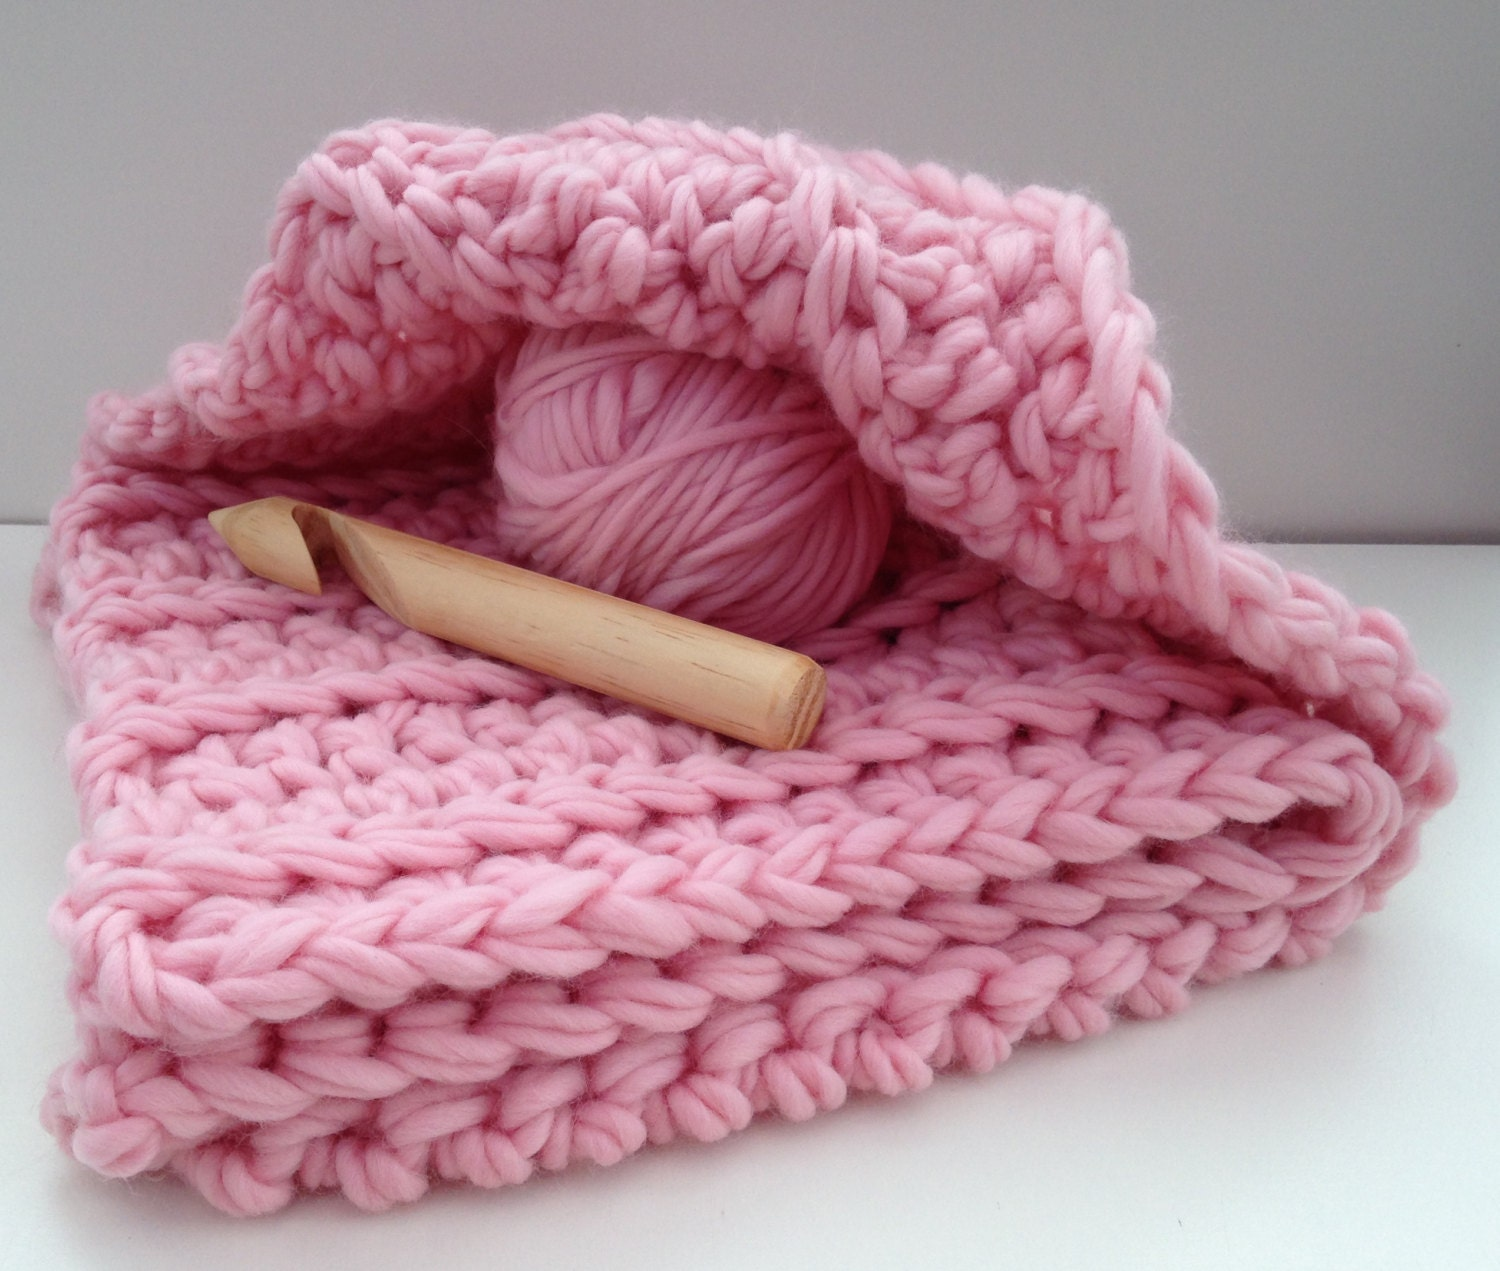 Crochet Kits : Blanket crochet kit baby blanket. DIY Learn to crochet super